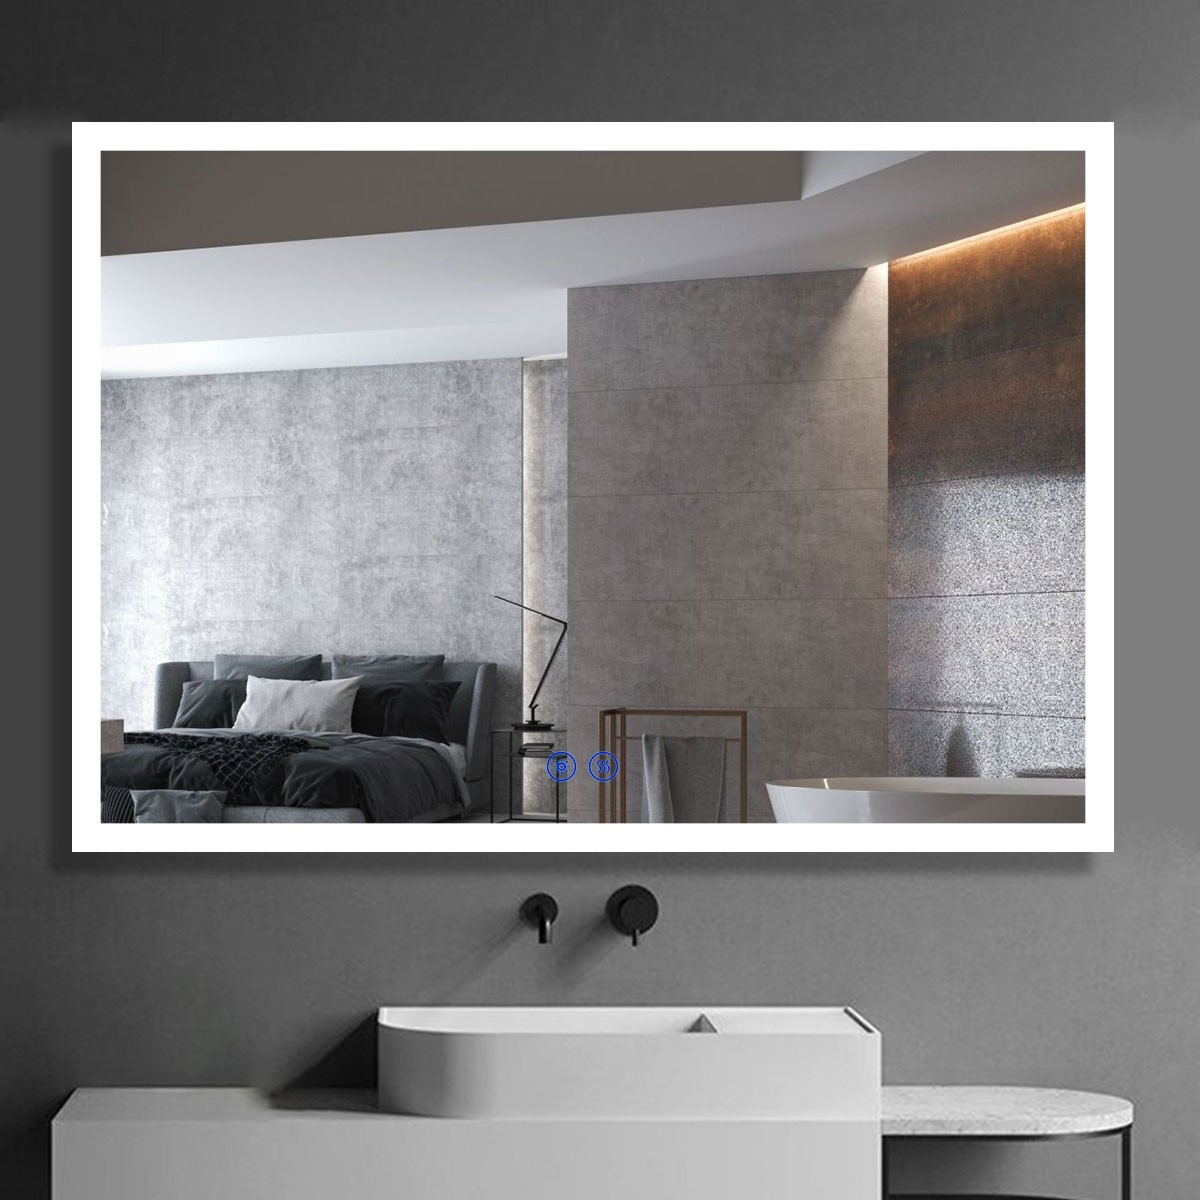 DECORAPORT 40 x 28 Inch LED Bathroom Mirror/Dress Mirror with Touch Button, Anti Fog, Dimmable, Vertical & Horizontal Mount (D110-4028)